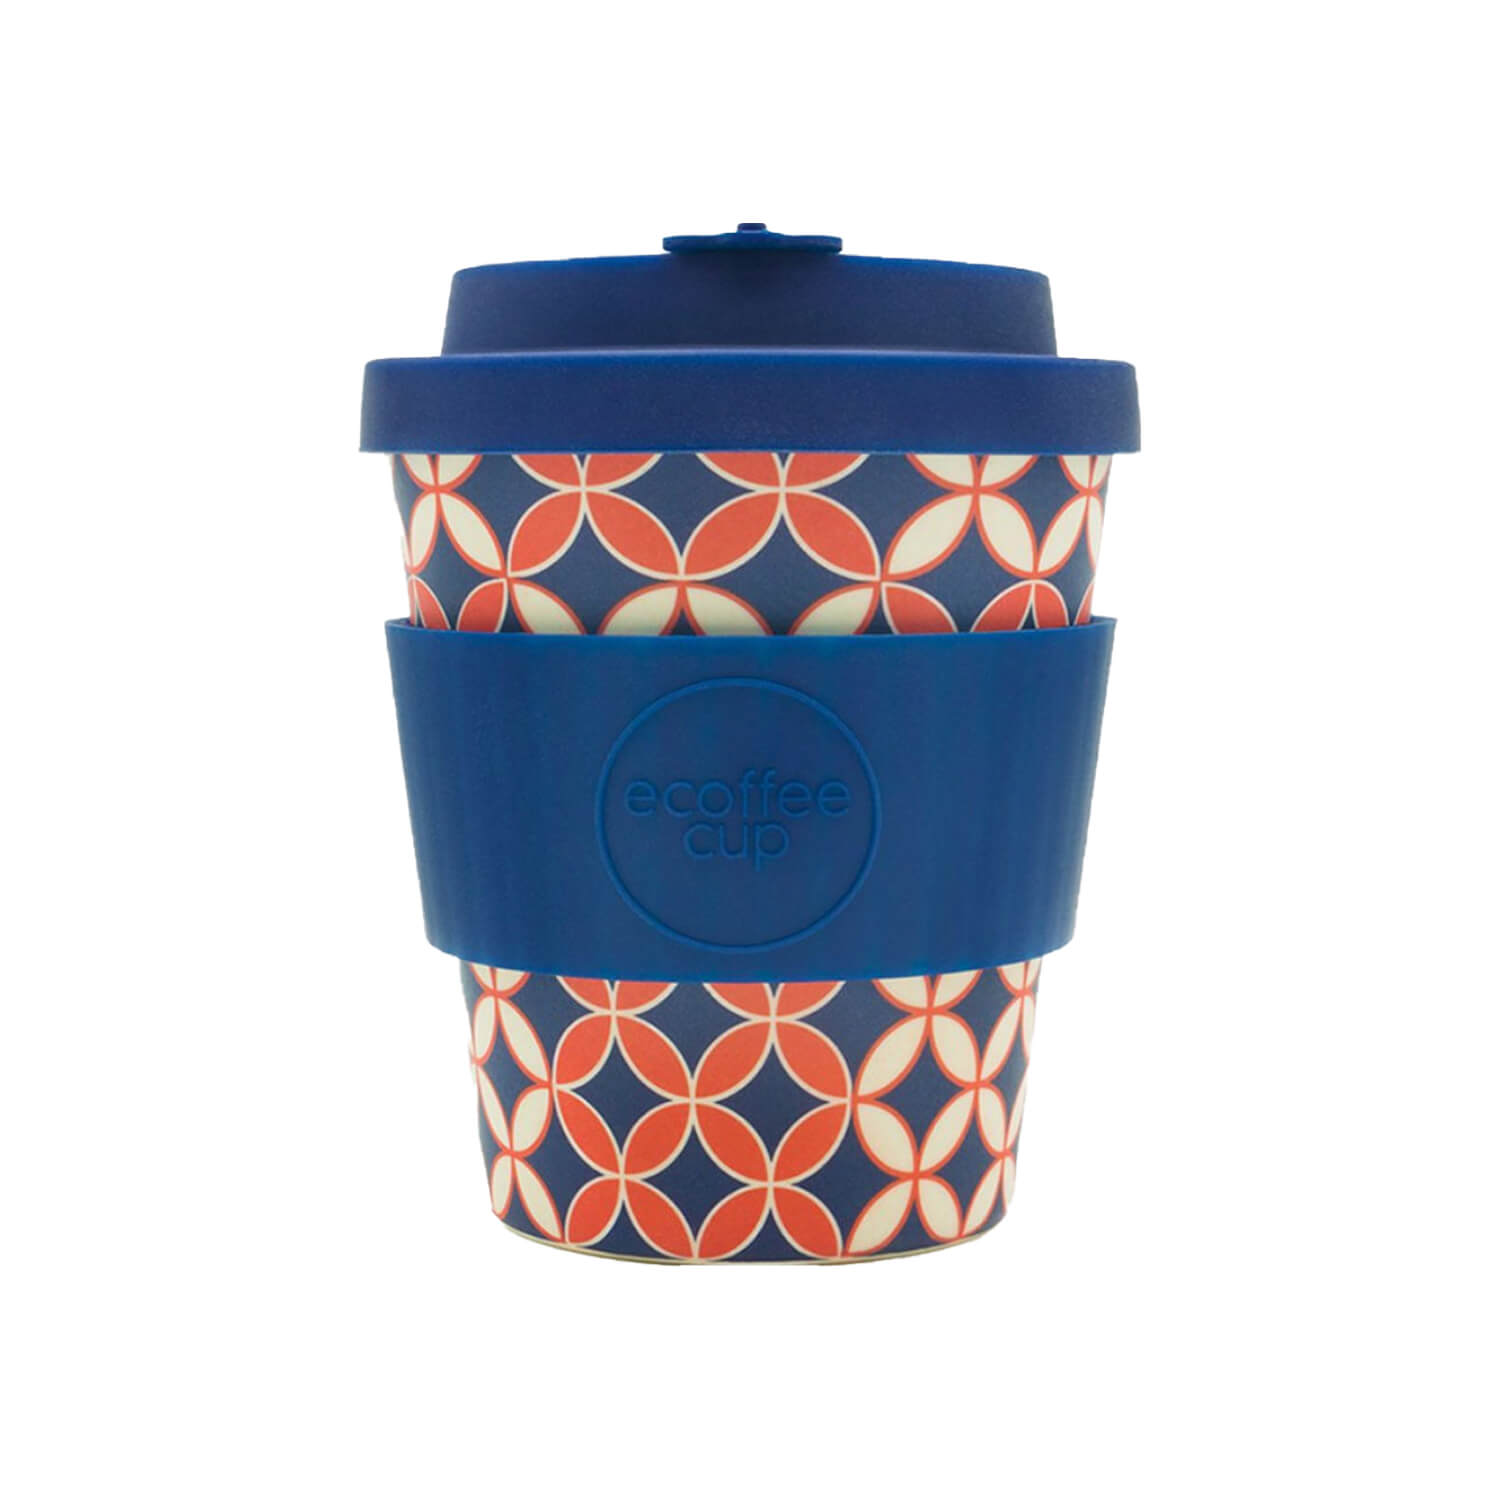 Ecoffee cup - Master spiros - 250 ml